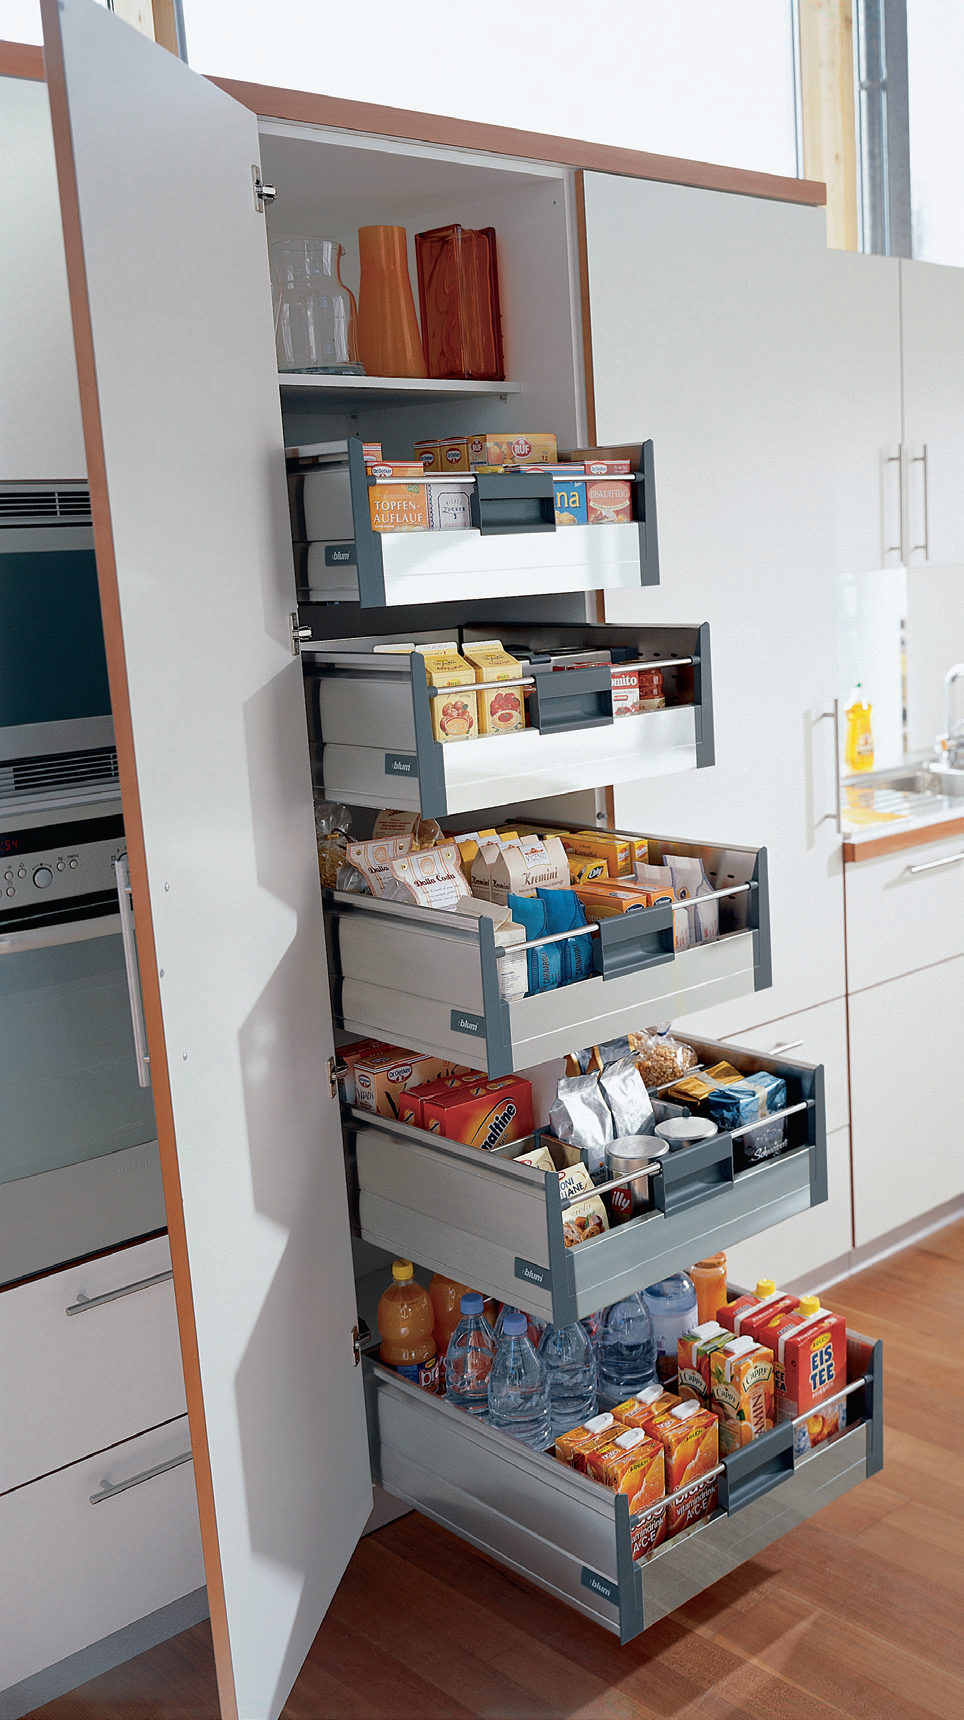 Blum TANDEMBOX larder unit. The wide pantry unit is equipped with 1 ...